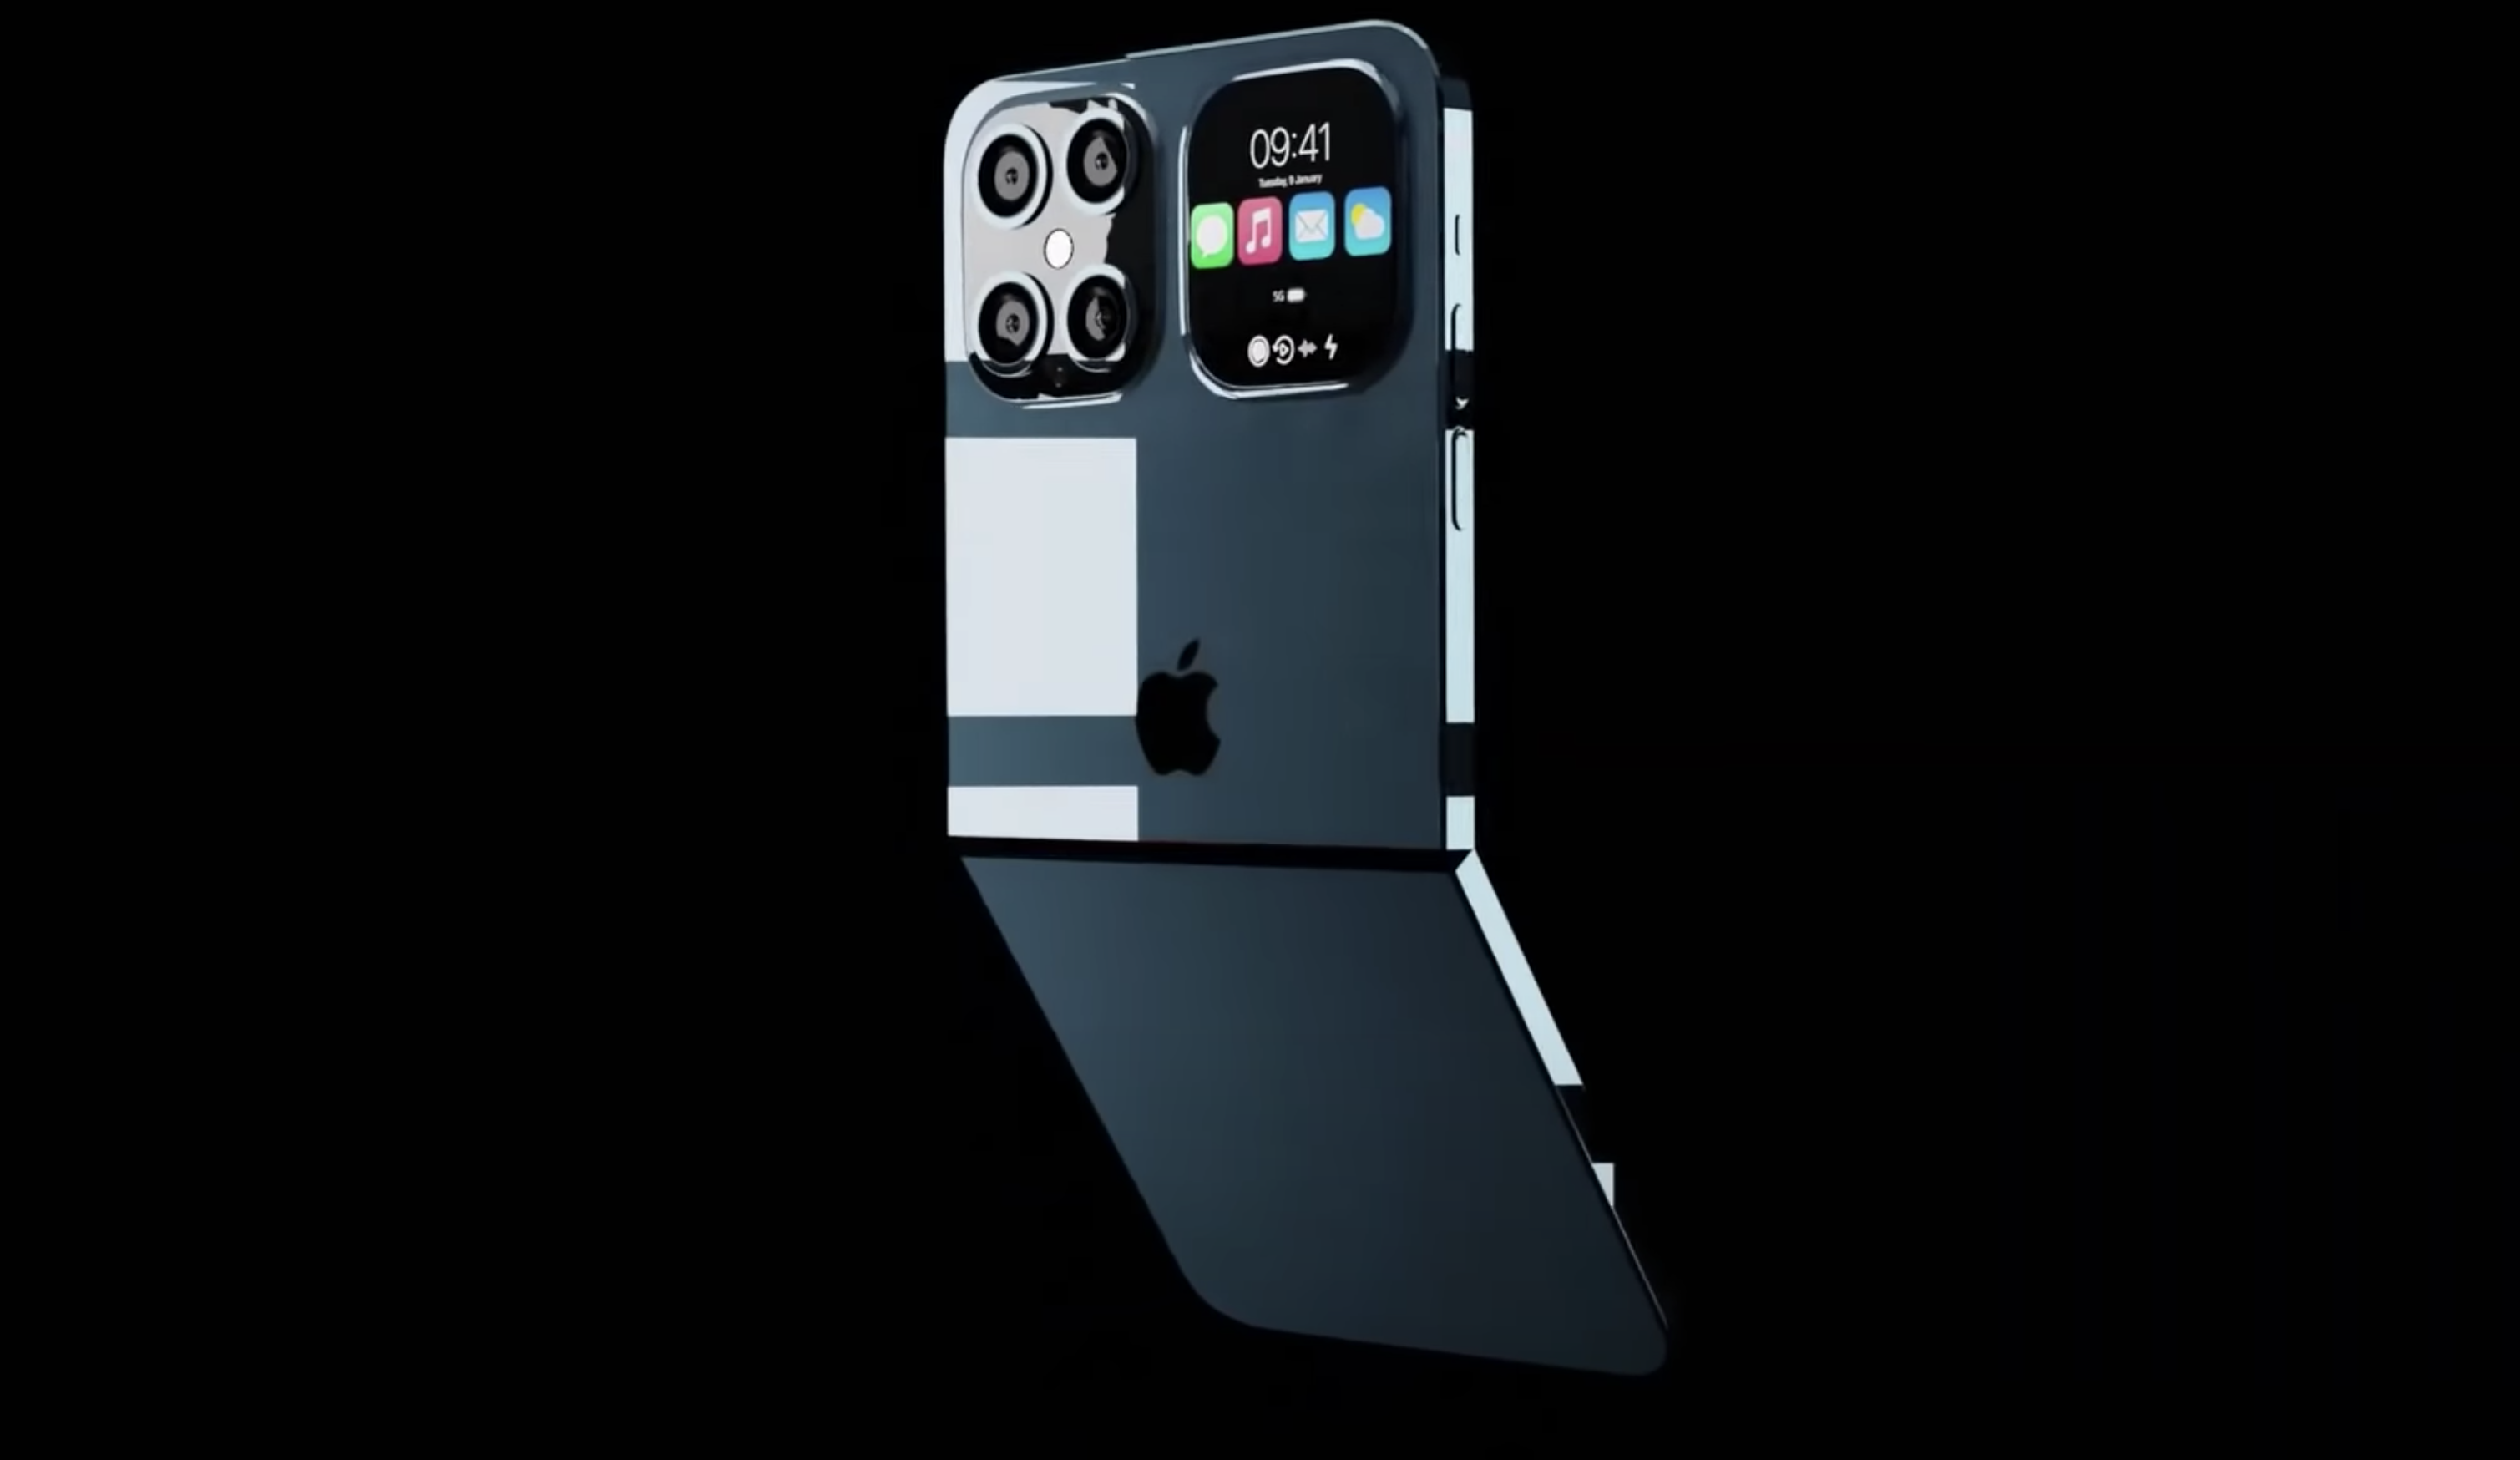 iPhone Flip rumors: Apple's foldable iPhone is likely still a few years away - CNET